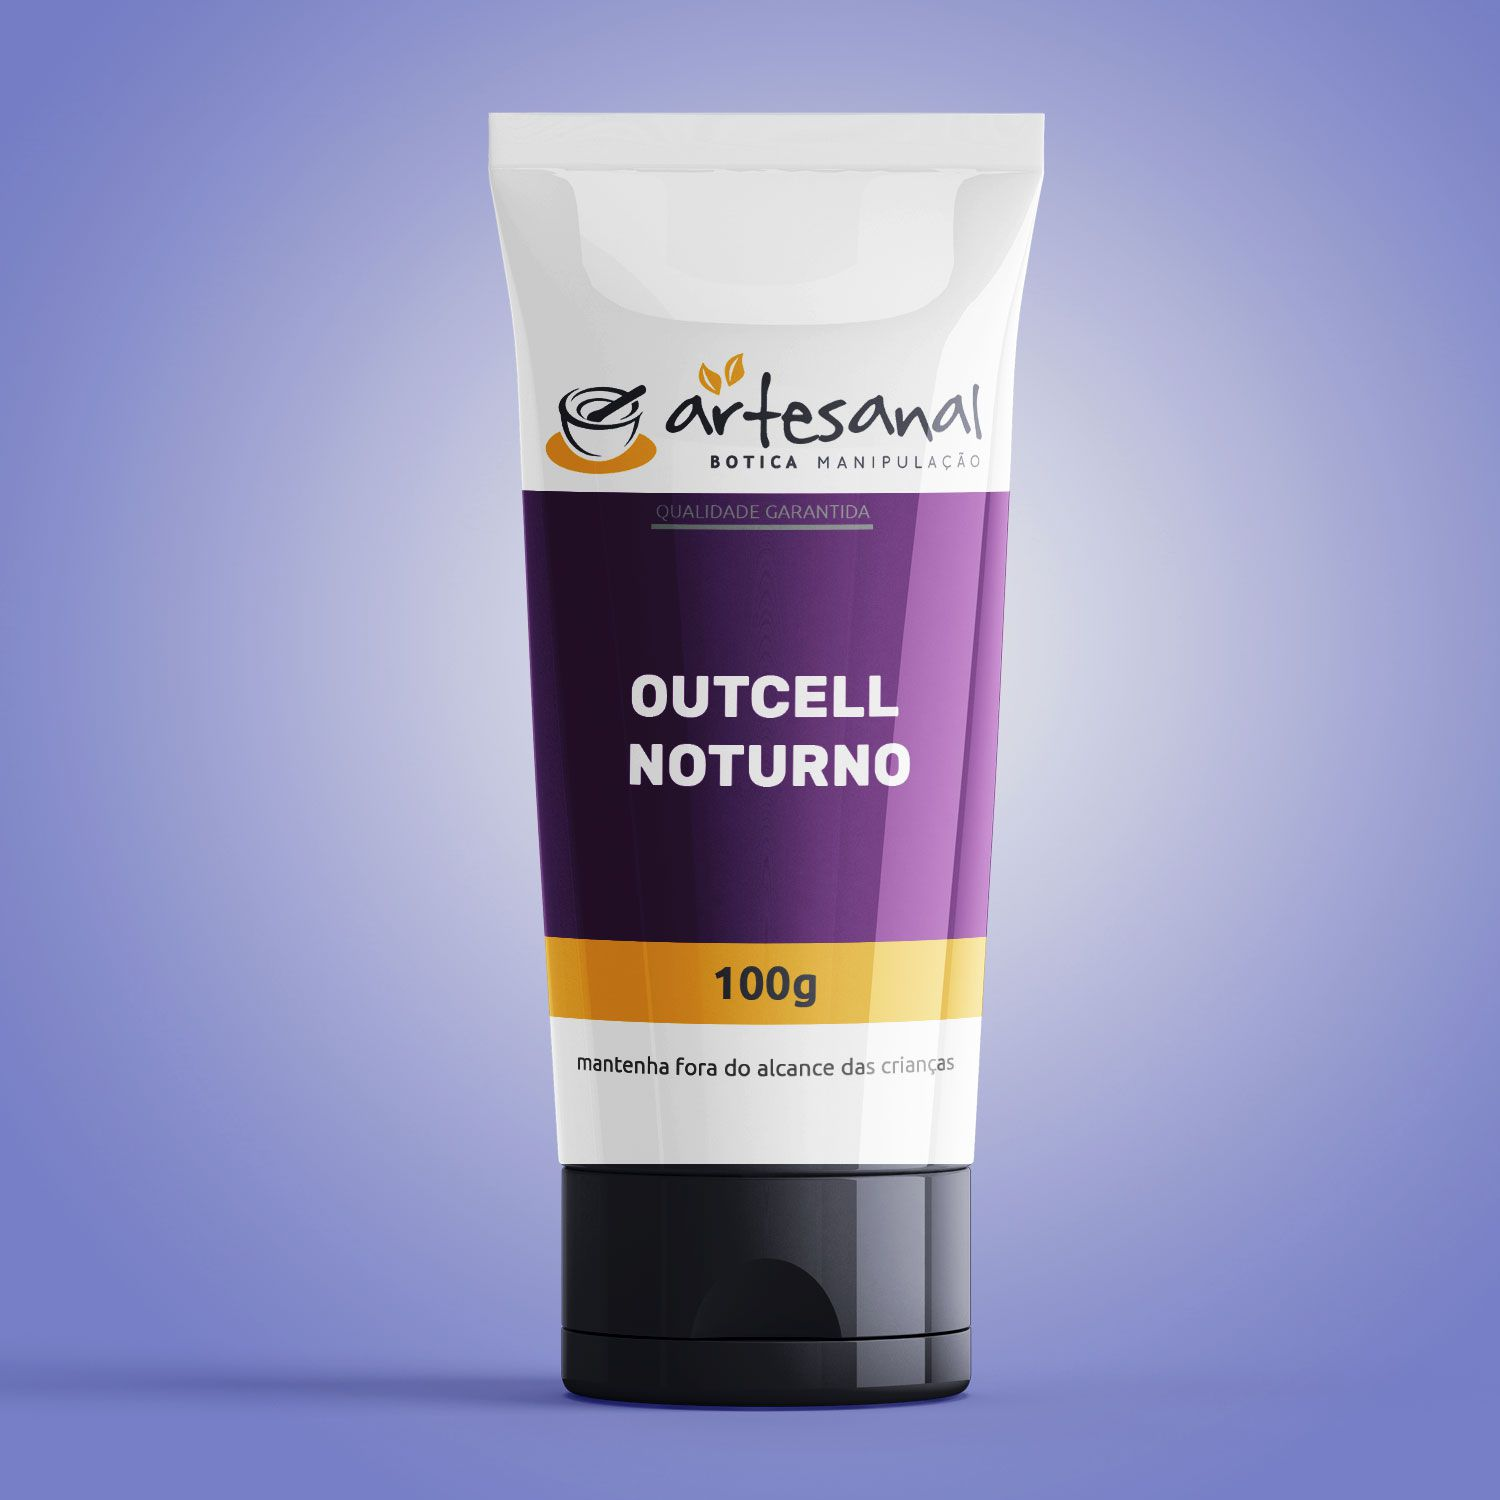 Outcell Noturno - 100g